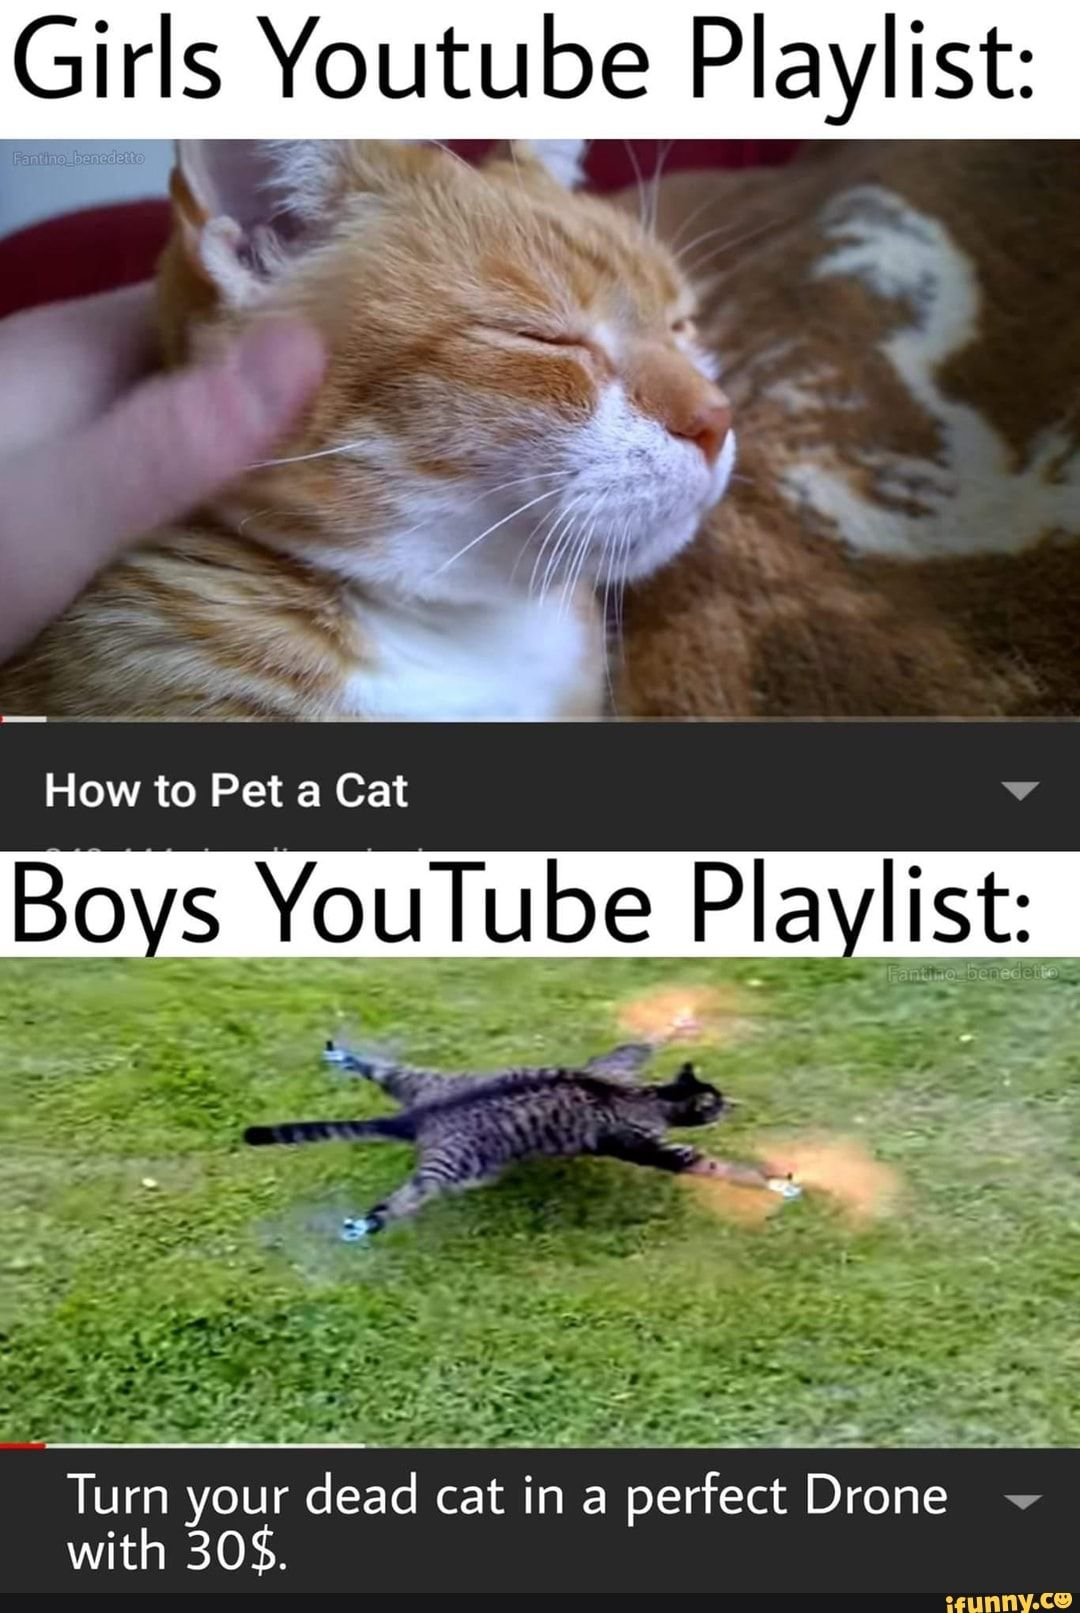 Girls Youtube Playlist Boys Youtube Plavllst F A Turn Your Dead Cat In A Perfect Drone With 30 Ifunny Cute Memes Funny Relatable Memes Girl Memes